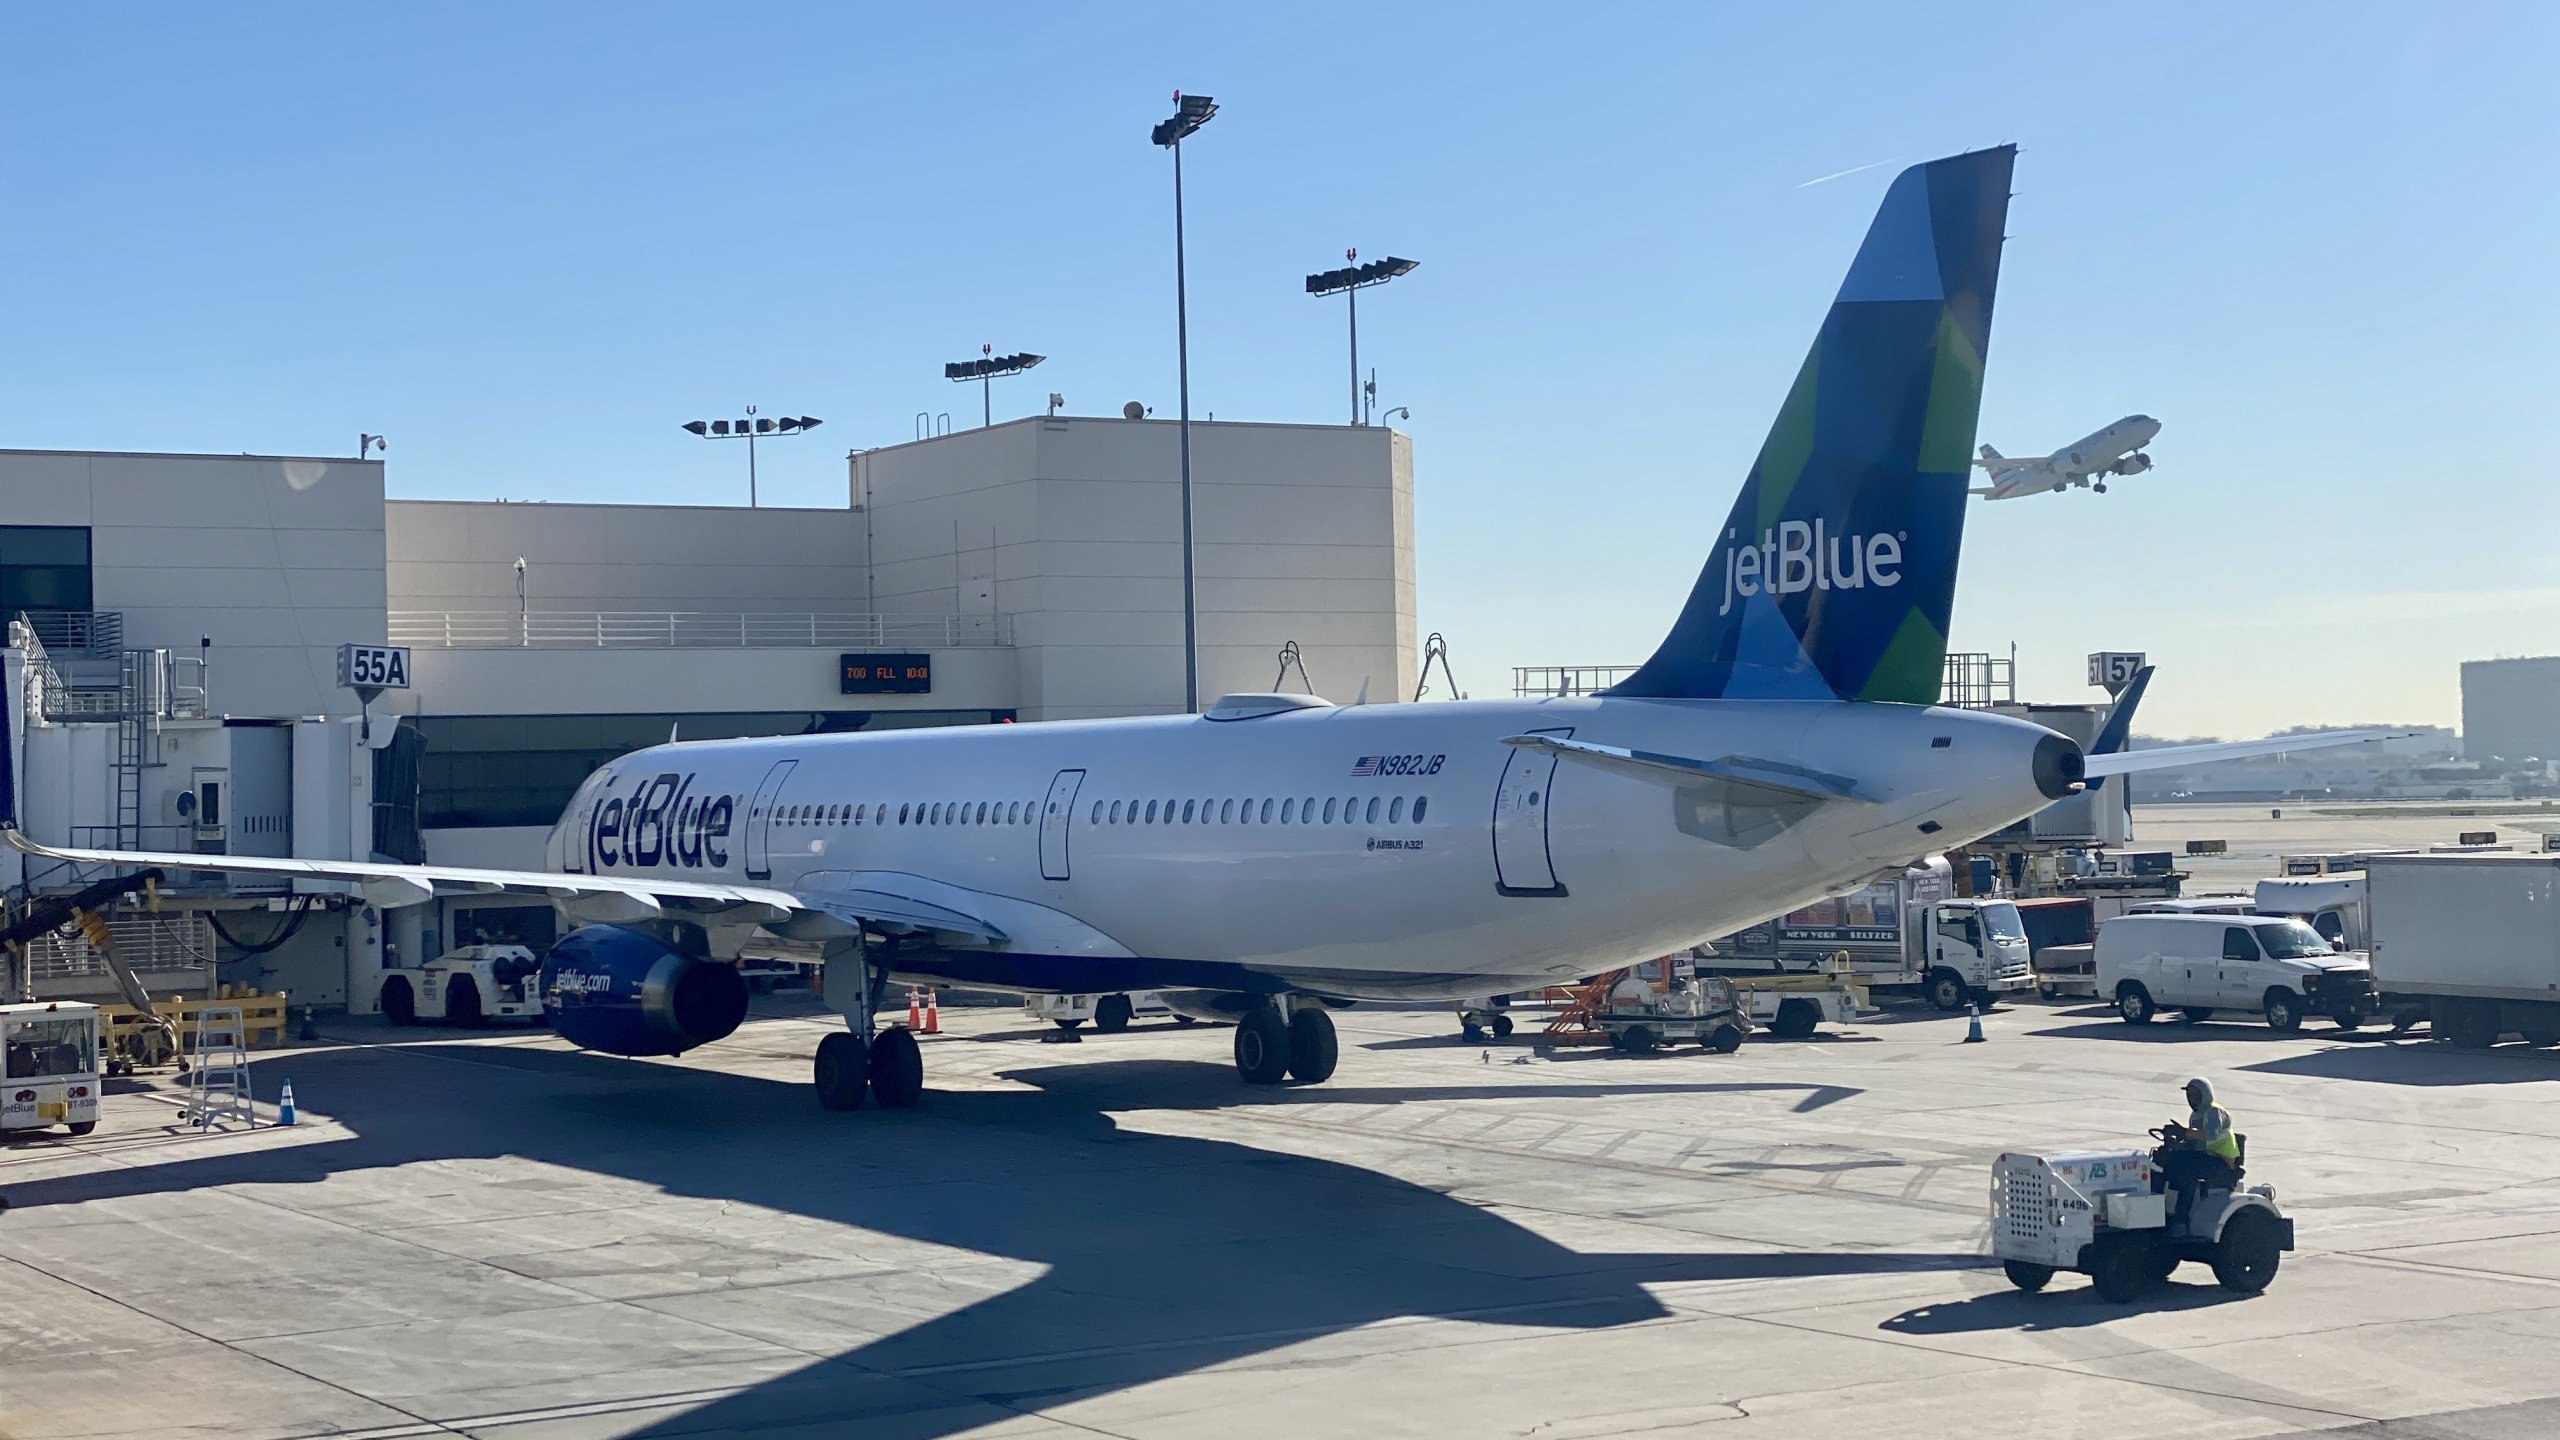 An Airbus 321 from the JetBlue airline company is seen at a gate at LAX on Jan. 6, 2020. (Credit: DANIEL SLIM/AFP via Getty Images)